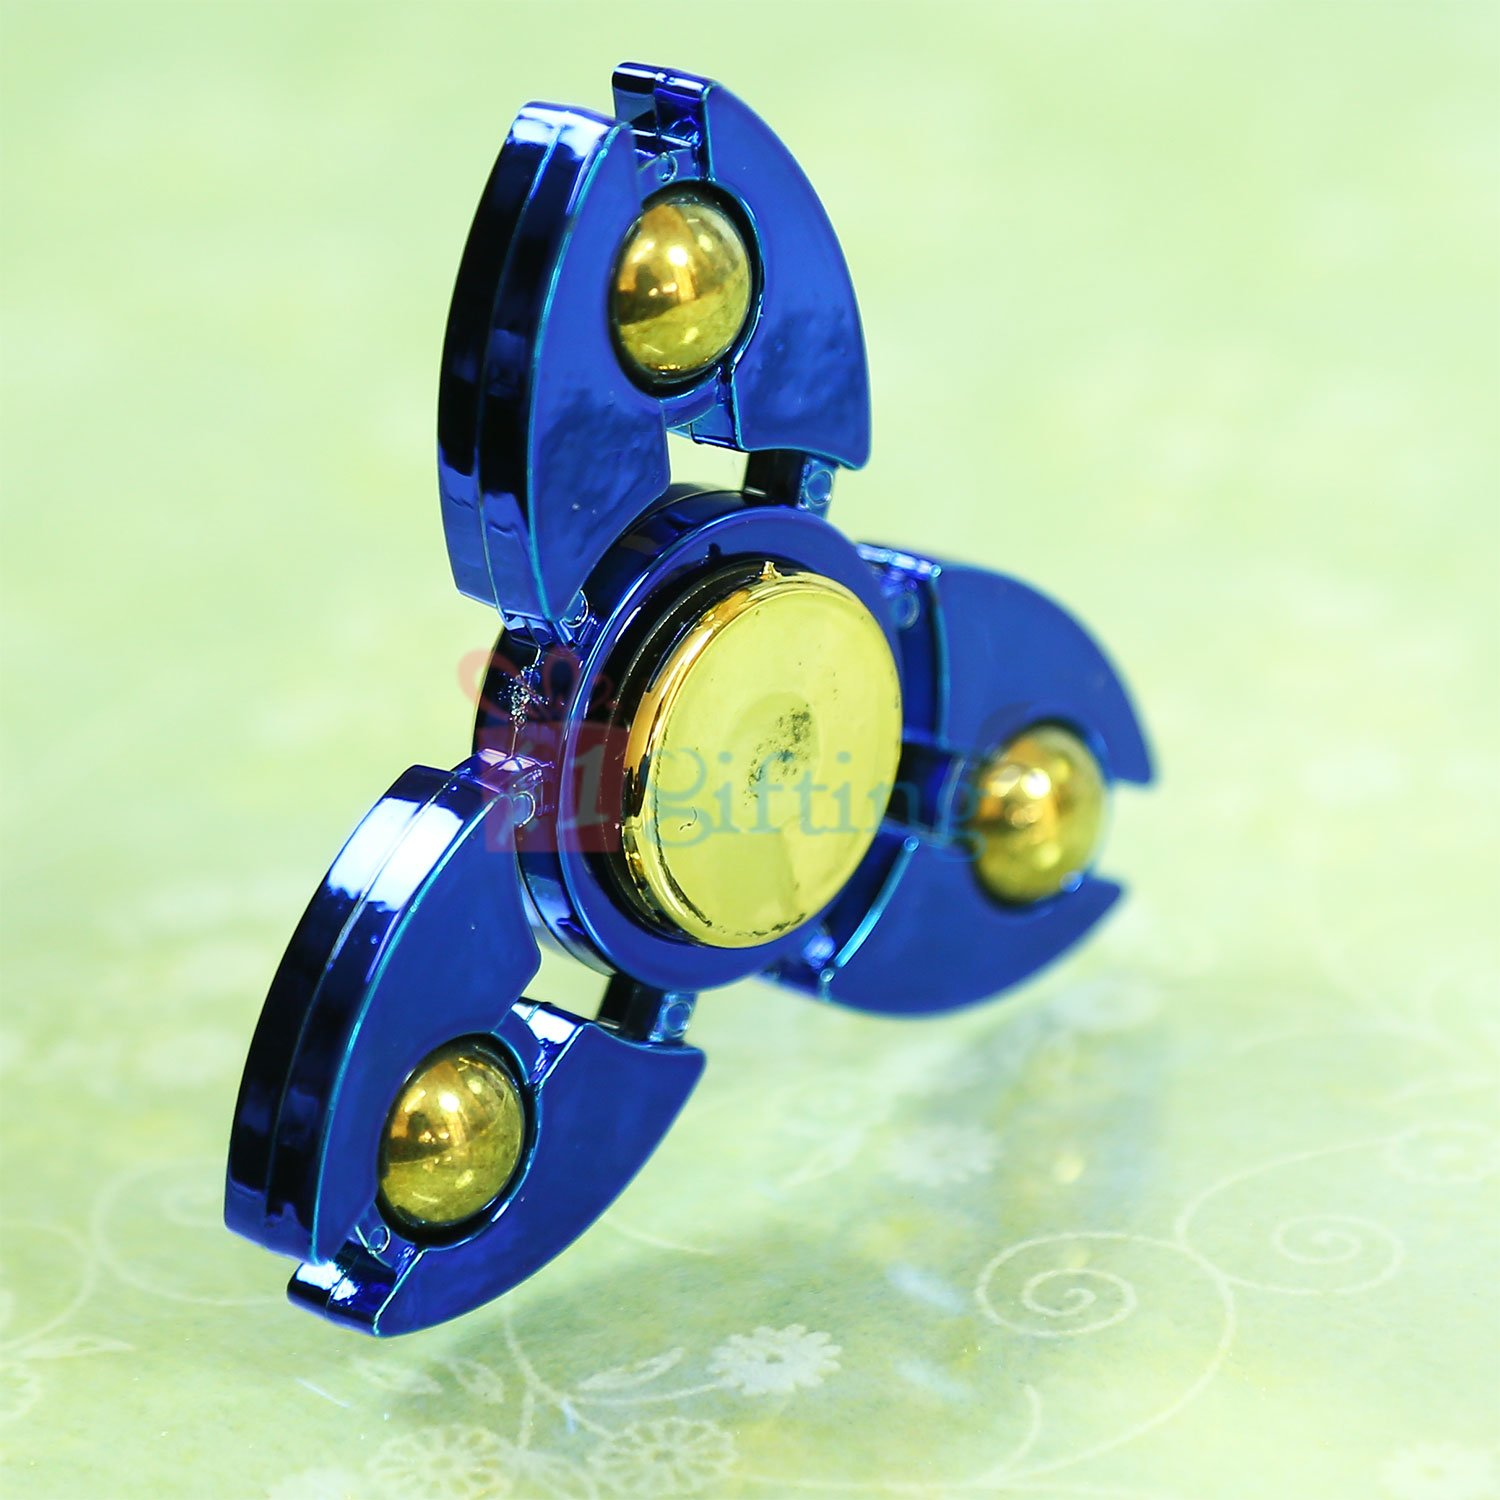 Amazing Metalic Blue Shield Ball Spinner